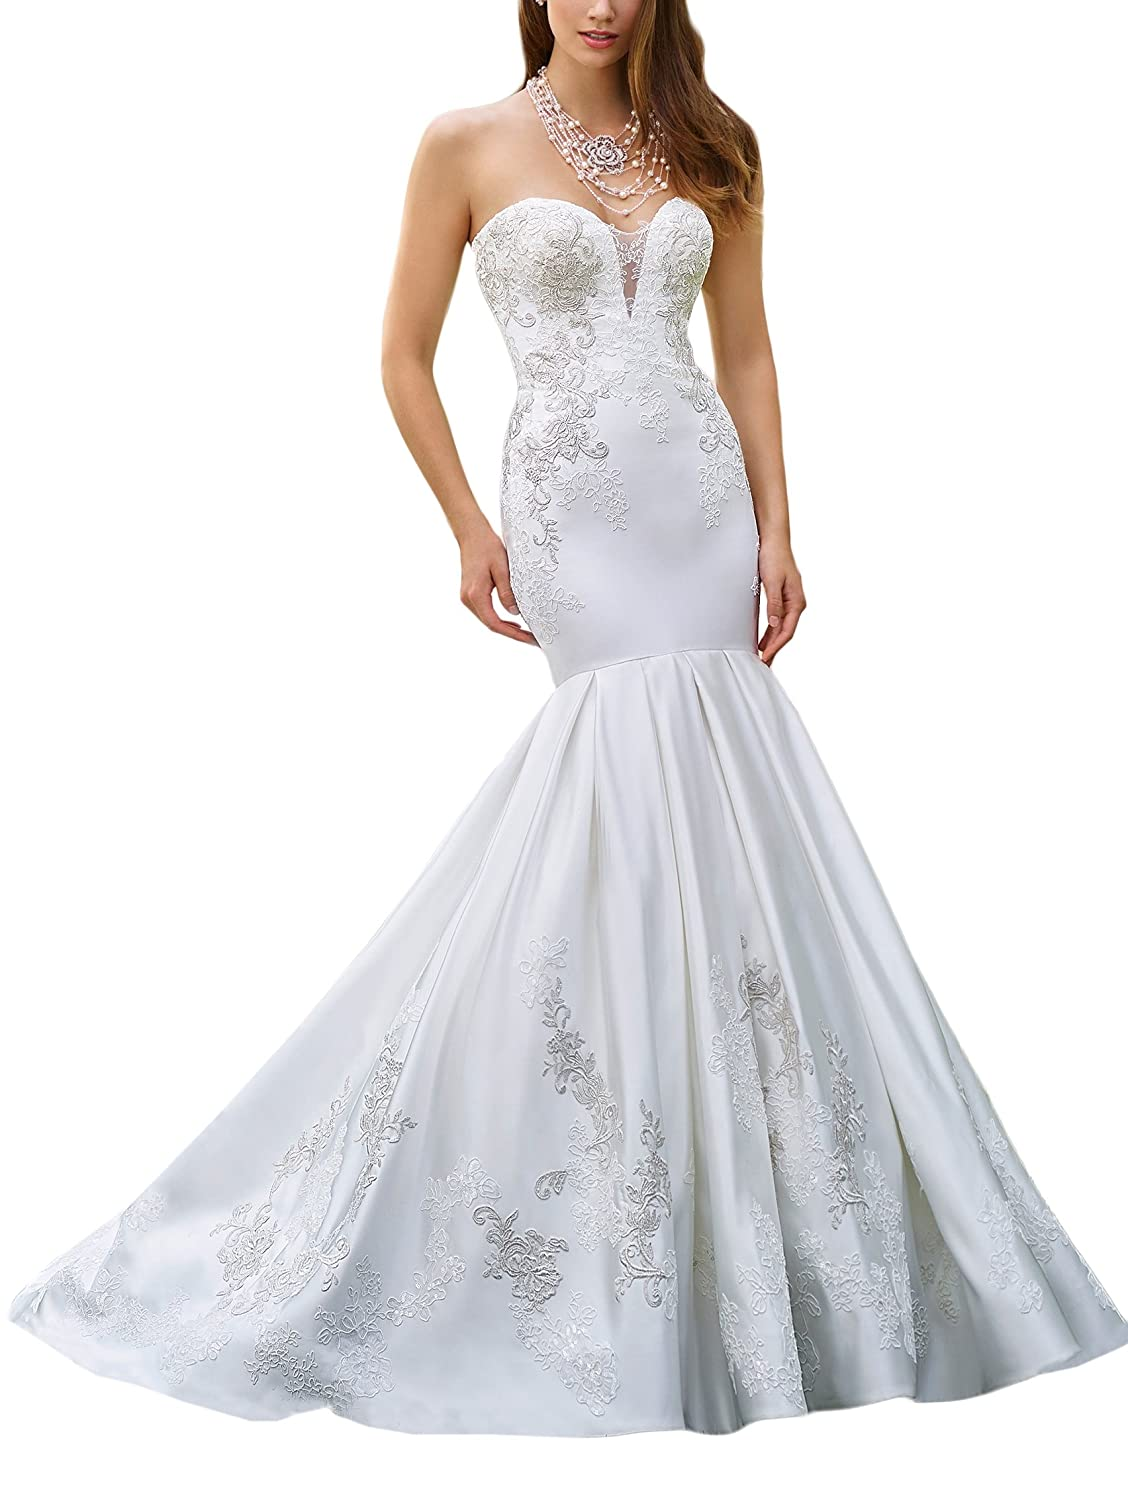 fa5822bdf0 Doramei Women s Sheath Satin Lace Appliques Backless Sweetheart Empire Wedding  Dress for Bride Bridal Gowns at Amazon Women s Clothing store